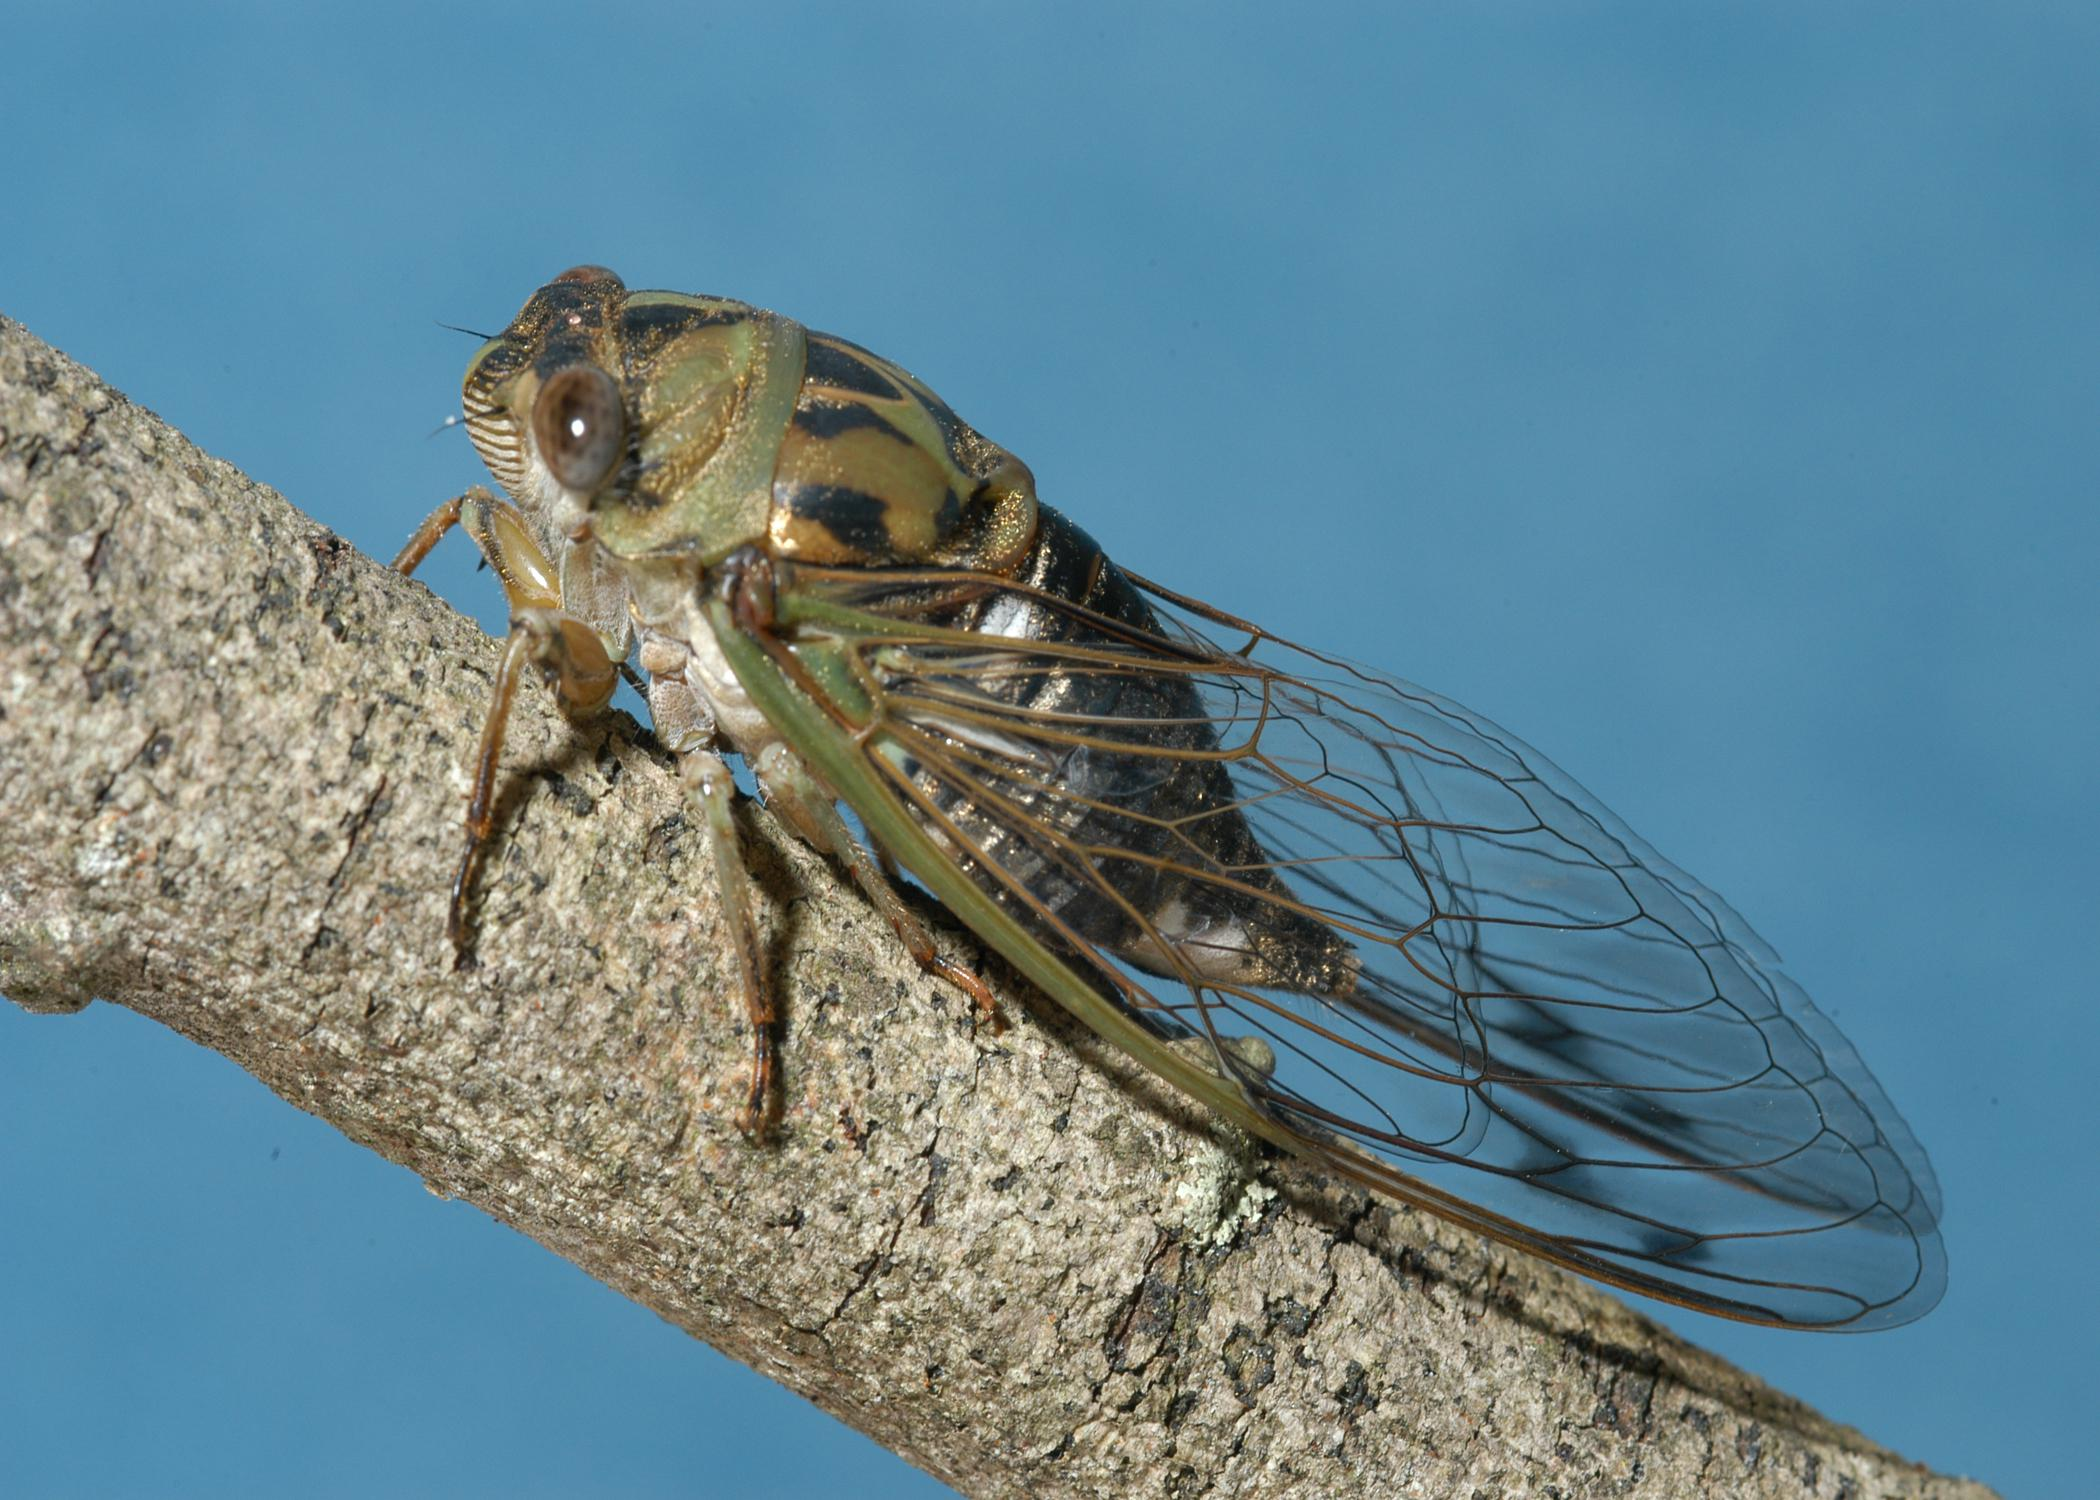 A winged, greenish insect rests on a branch.